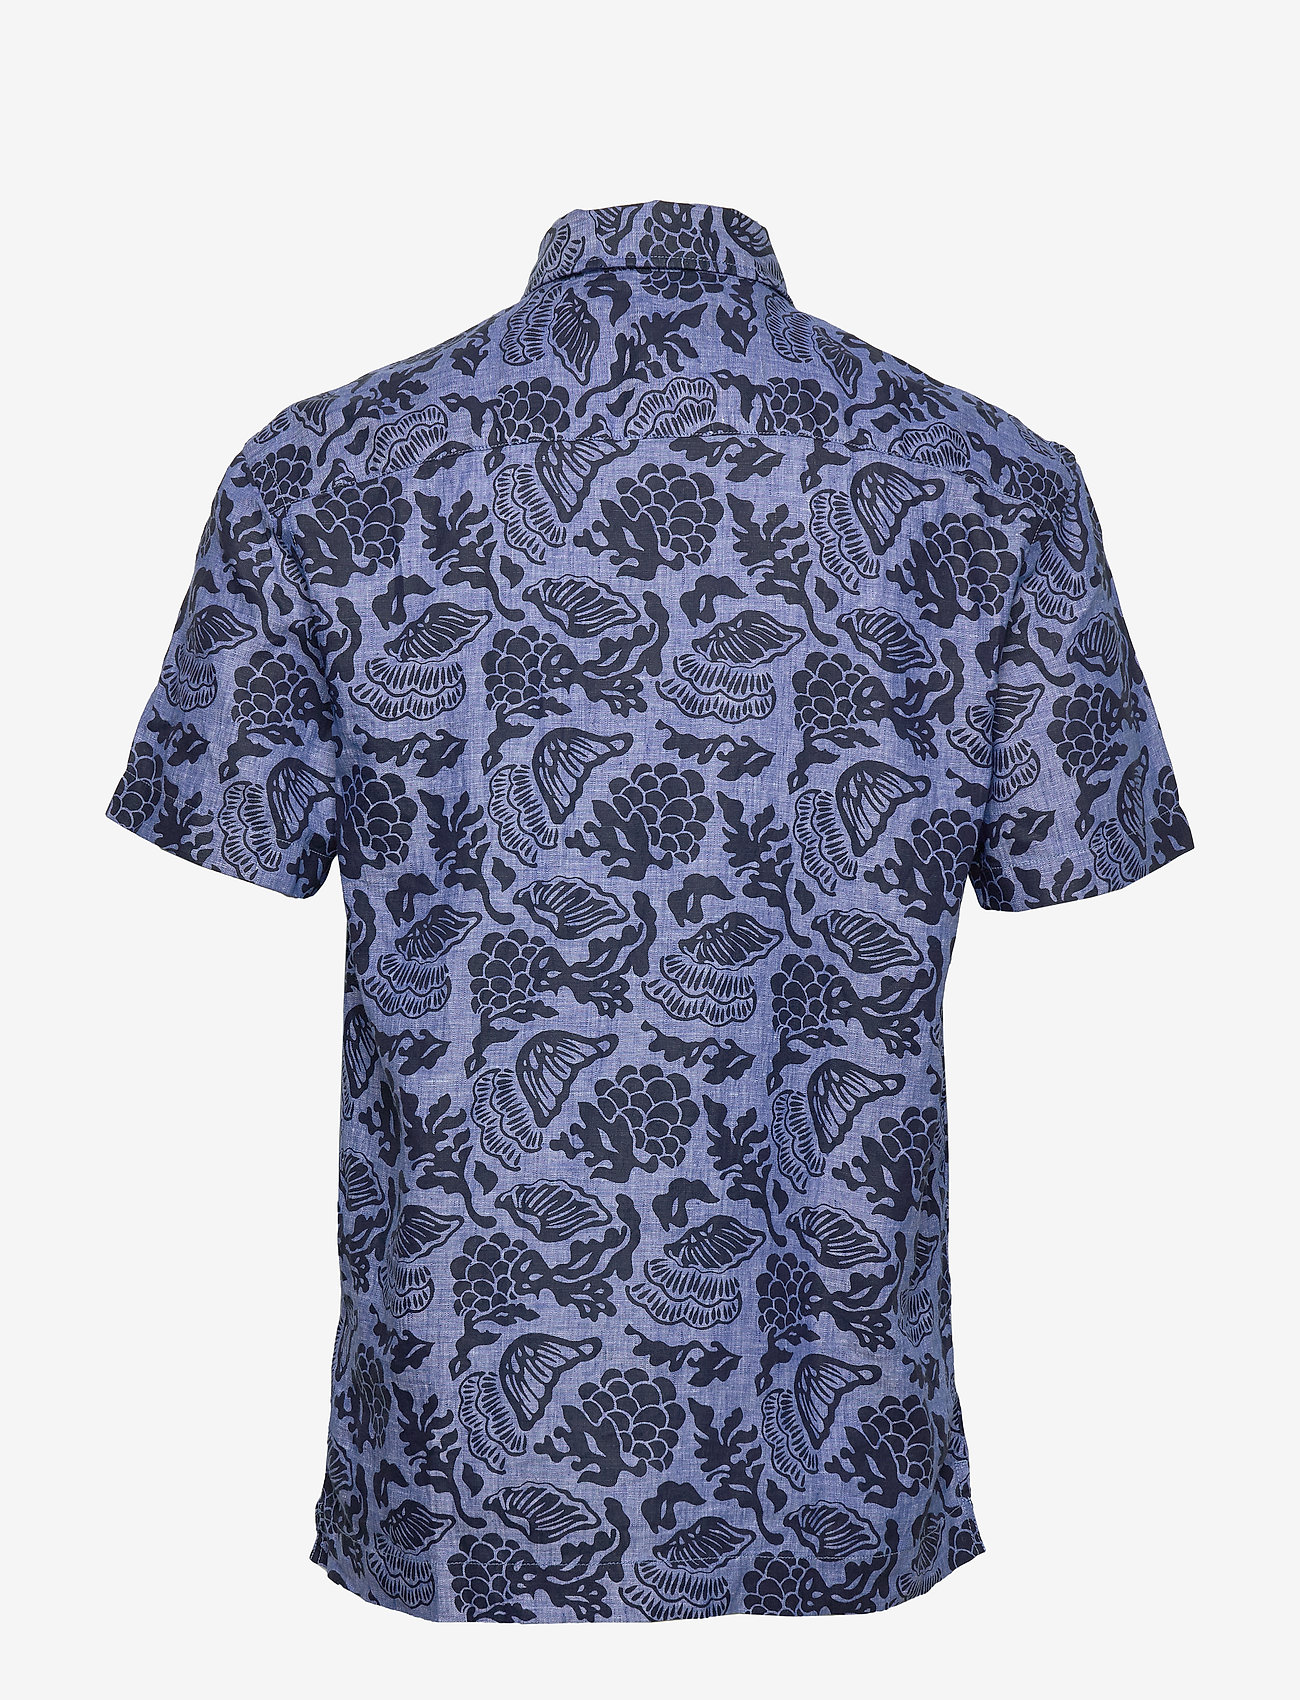 Scotch & Soda - HAWAII FIT- All-over  printed linen shortsleeve shirt - hørskjorter - combo a - 1